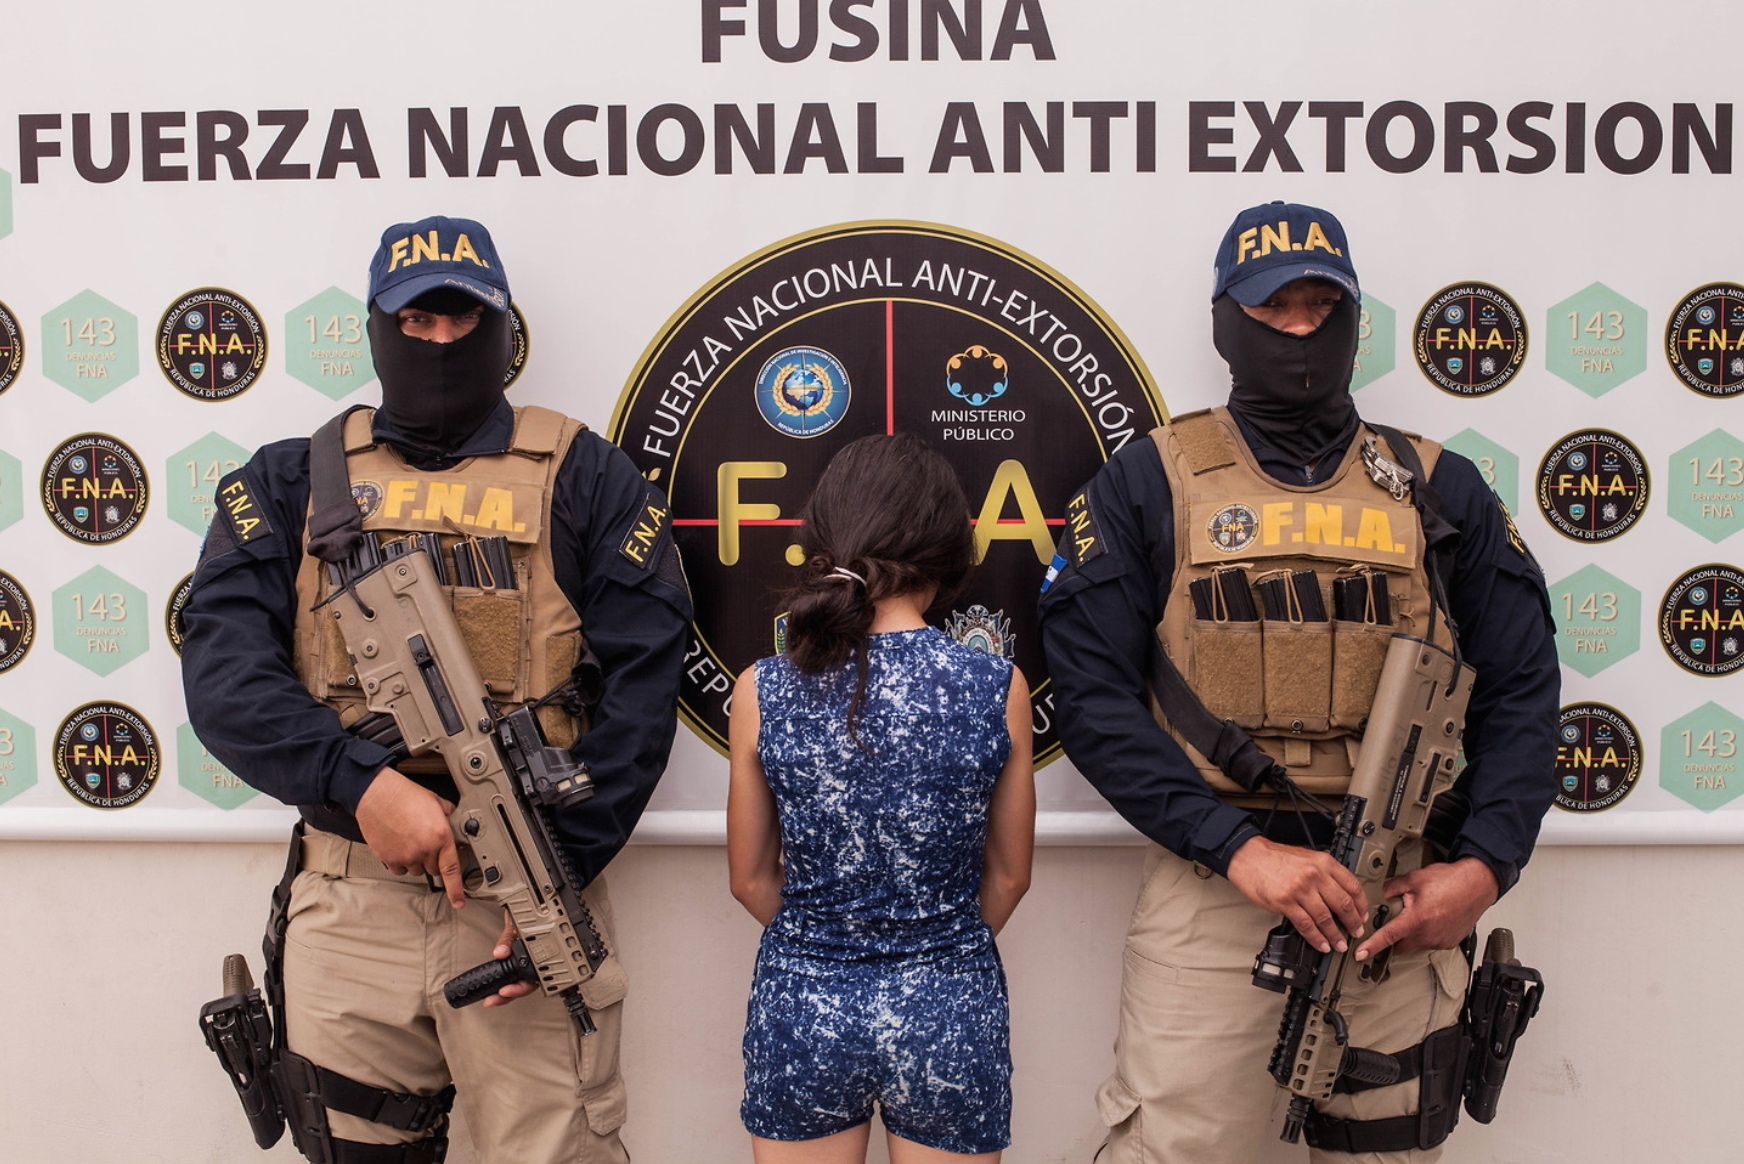 A 16-year-old girl, arrested for extortion, is presented to the press by the police in Tegucigalpa. Teenagers in Honduras are often used to carry out extortion for gangs, their family's lives are threatened if they do not cooperate. If they are caught, like this girl, they will go to prison for taking part in the crime. 9th August 2017.